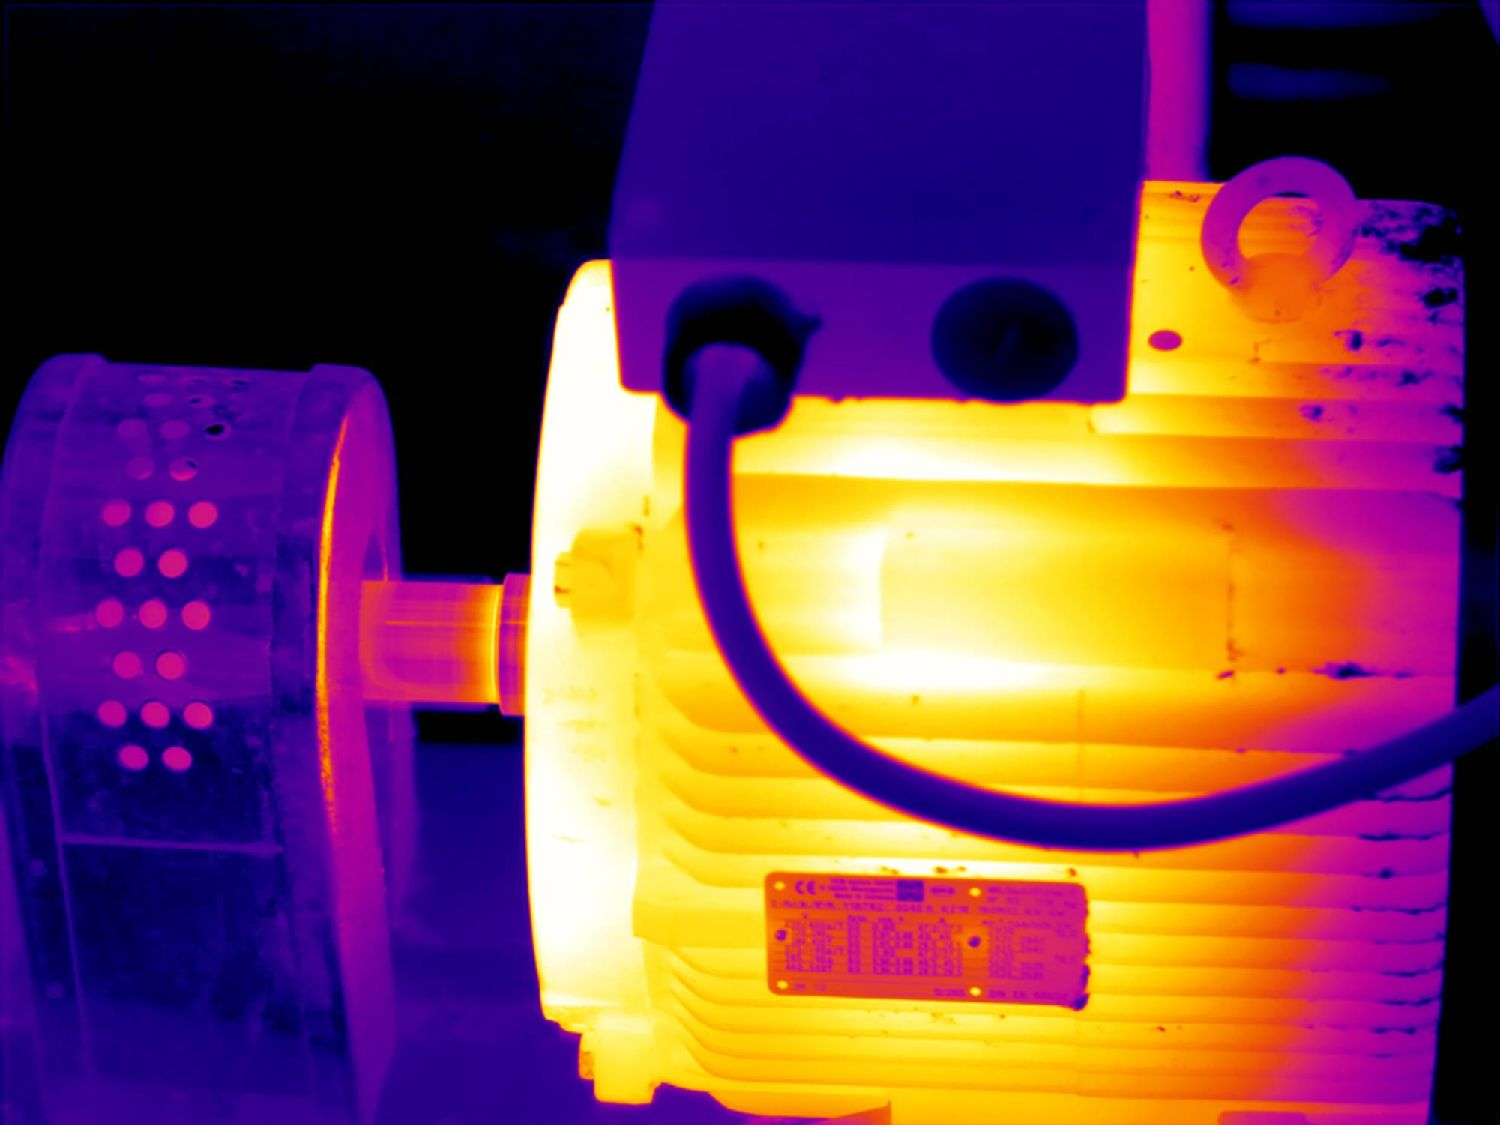 thermography-mechanical-component-2000x1500.jpg